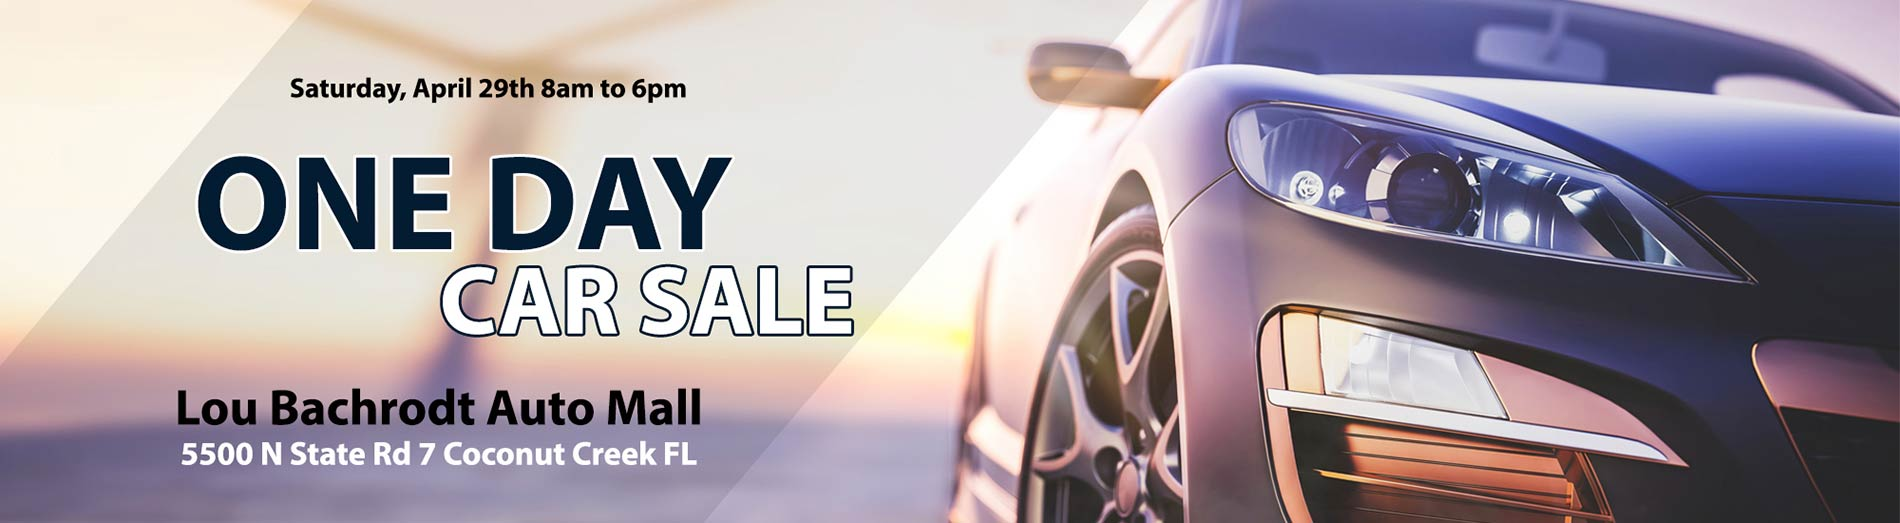 One day Car Sale